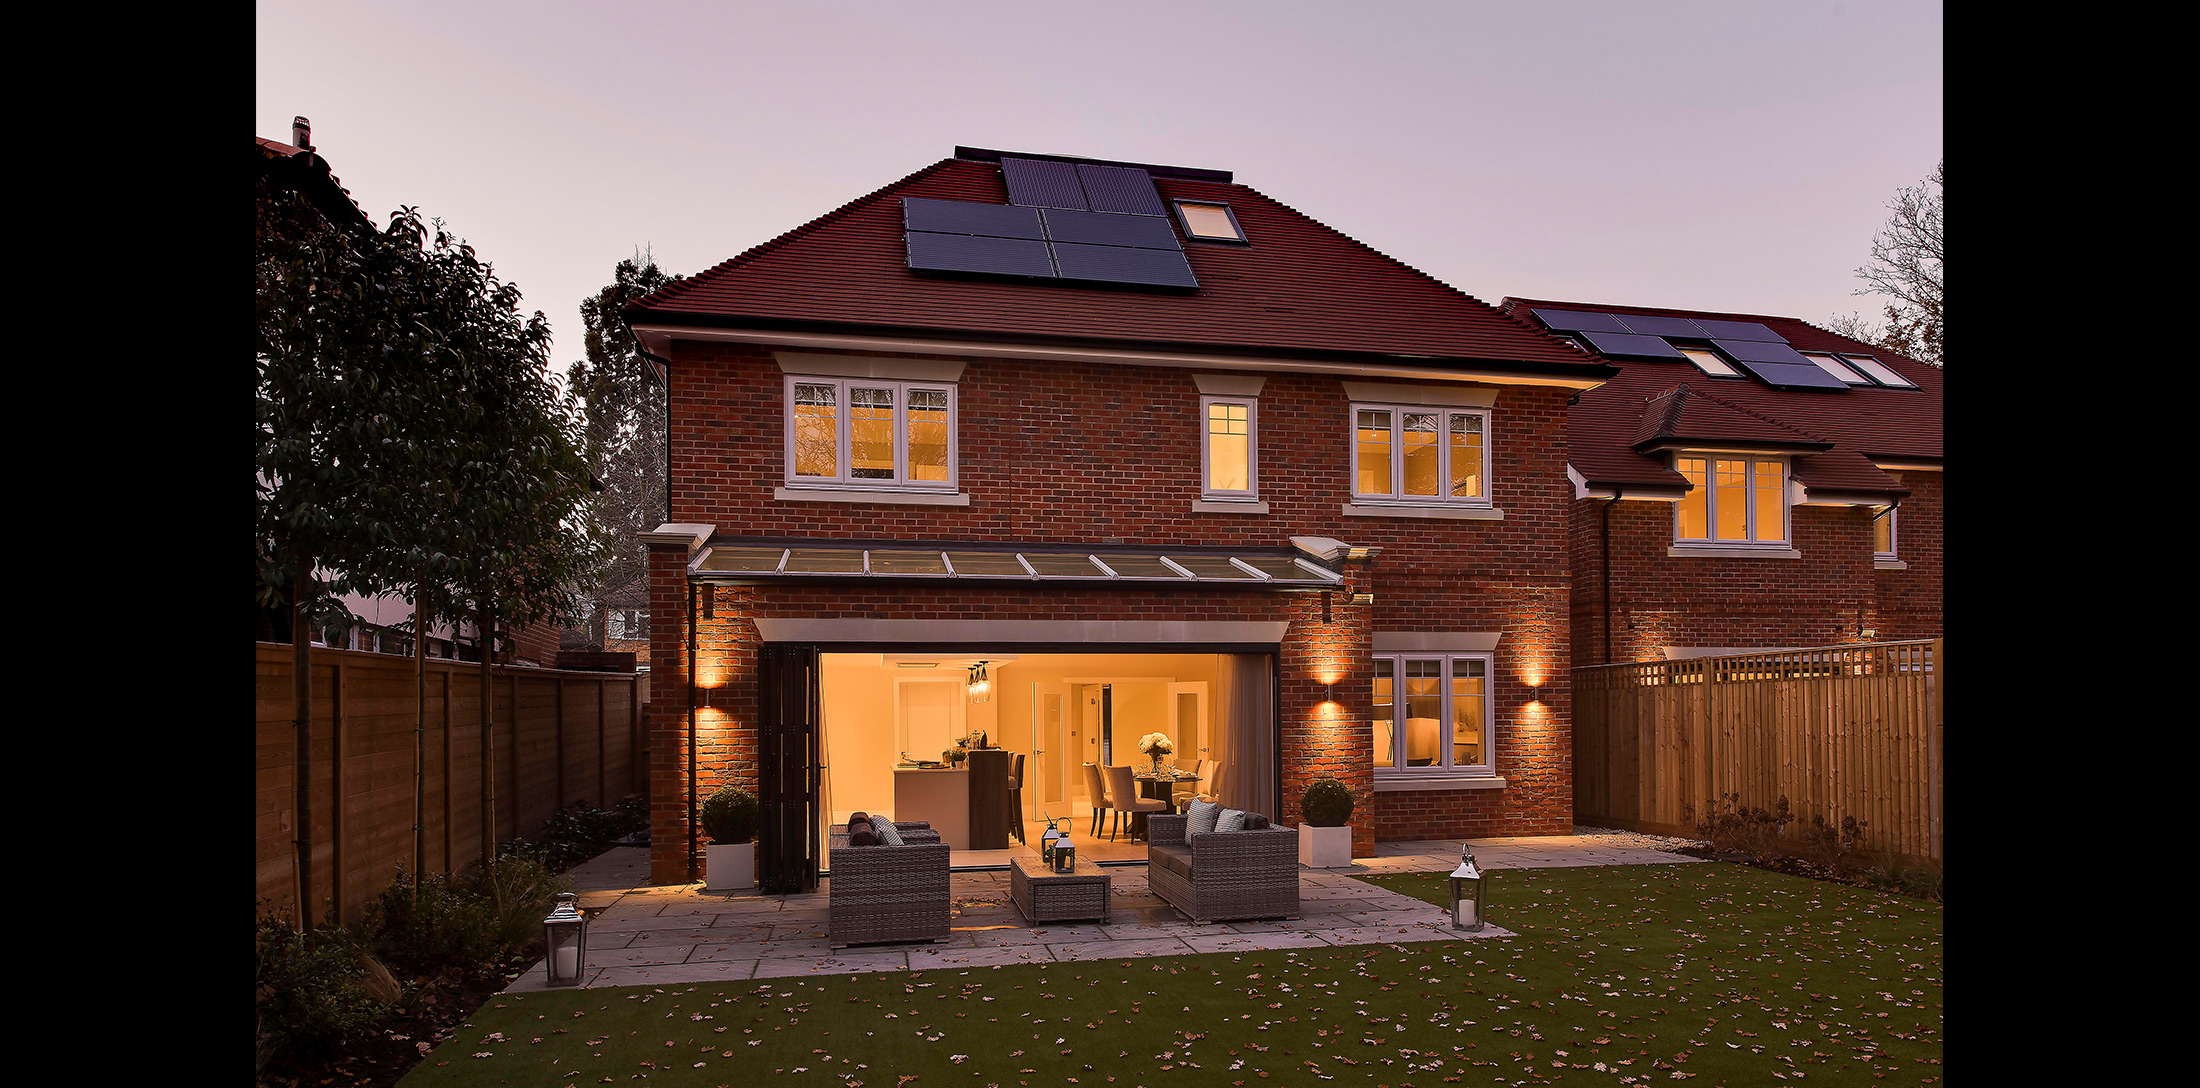 concept-developments-henley-drive-coombe-hill-dusk-1